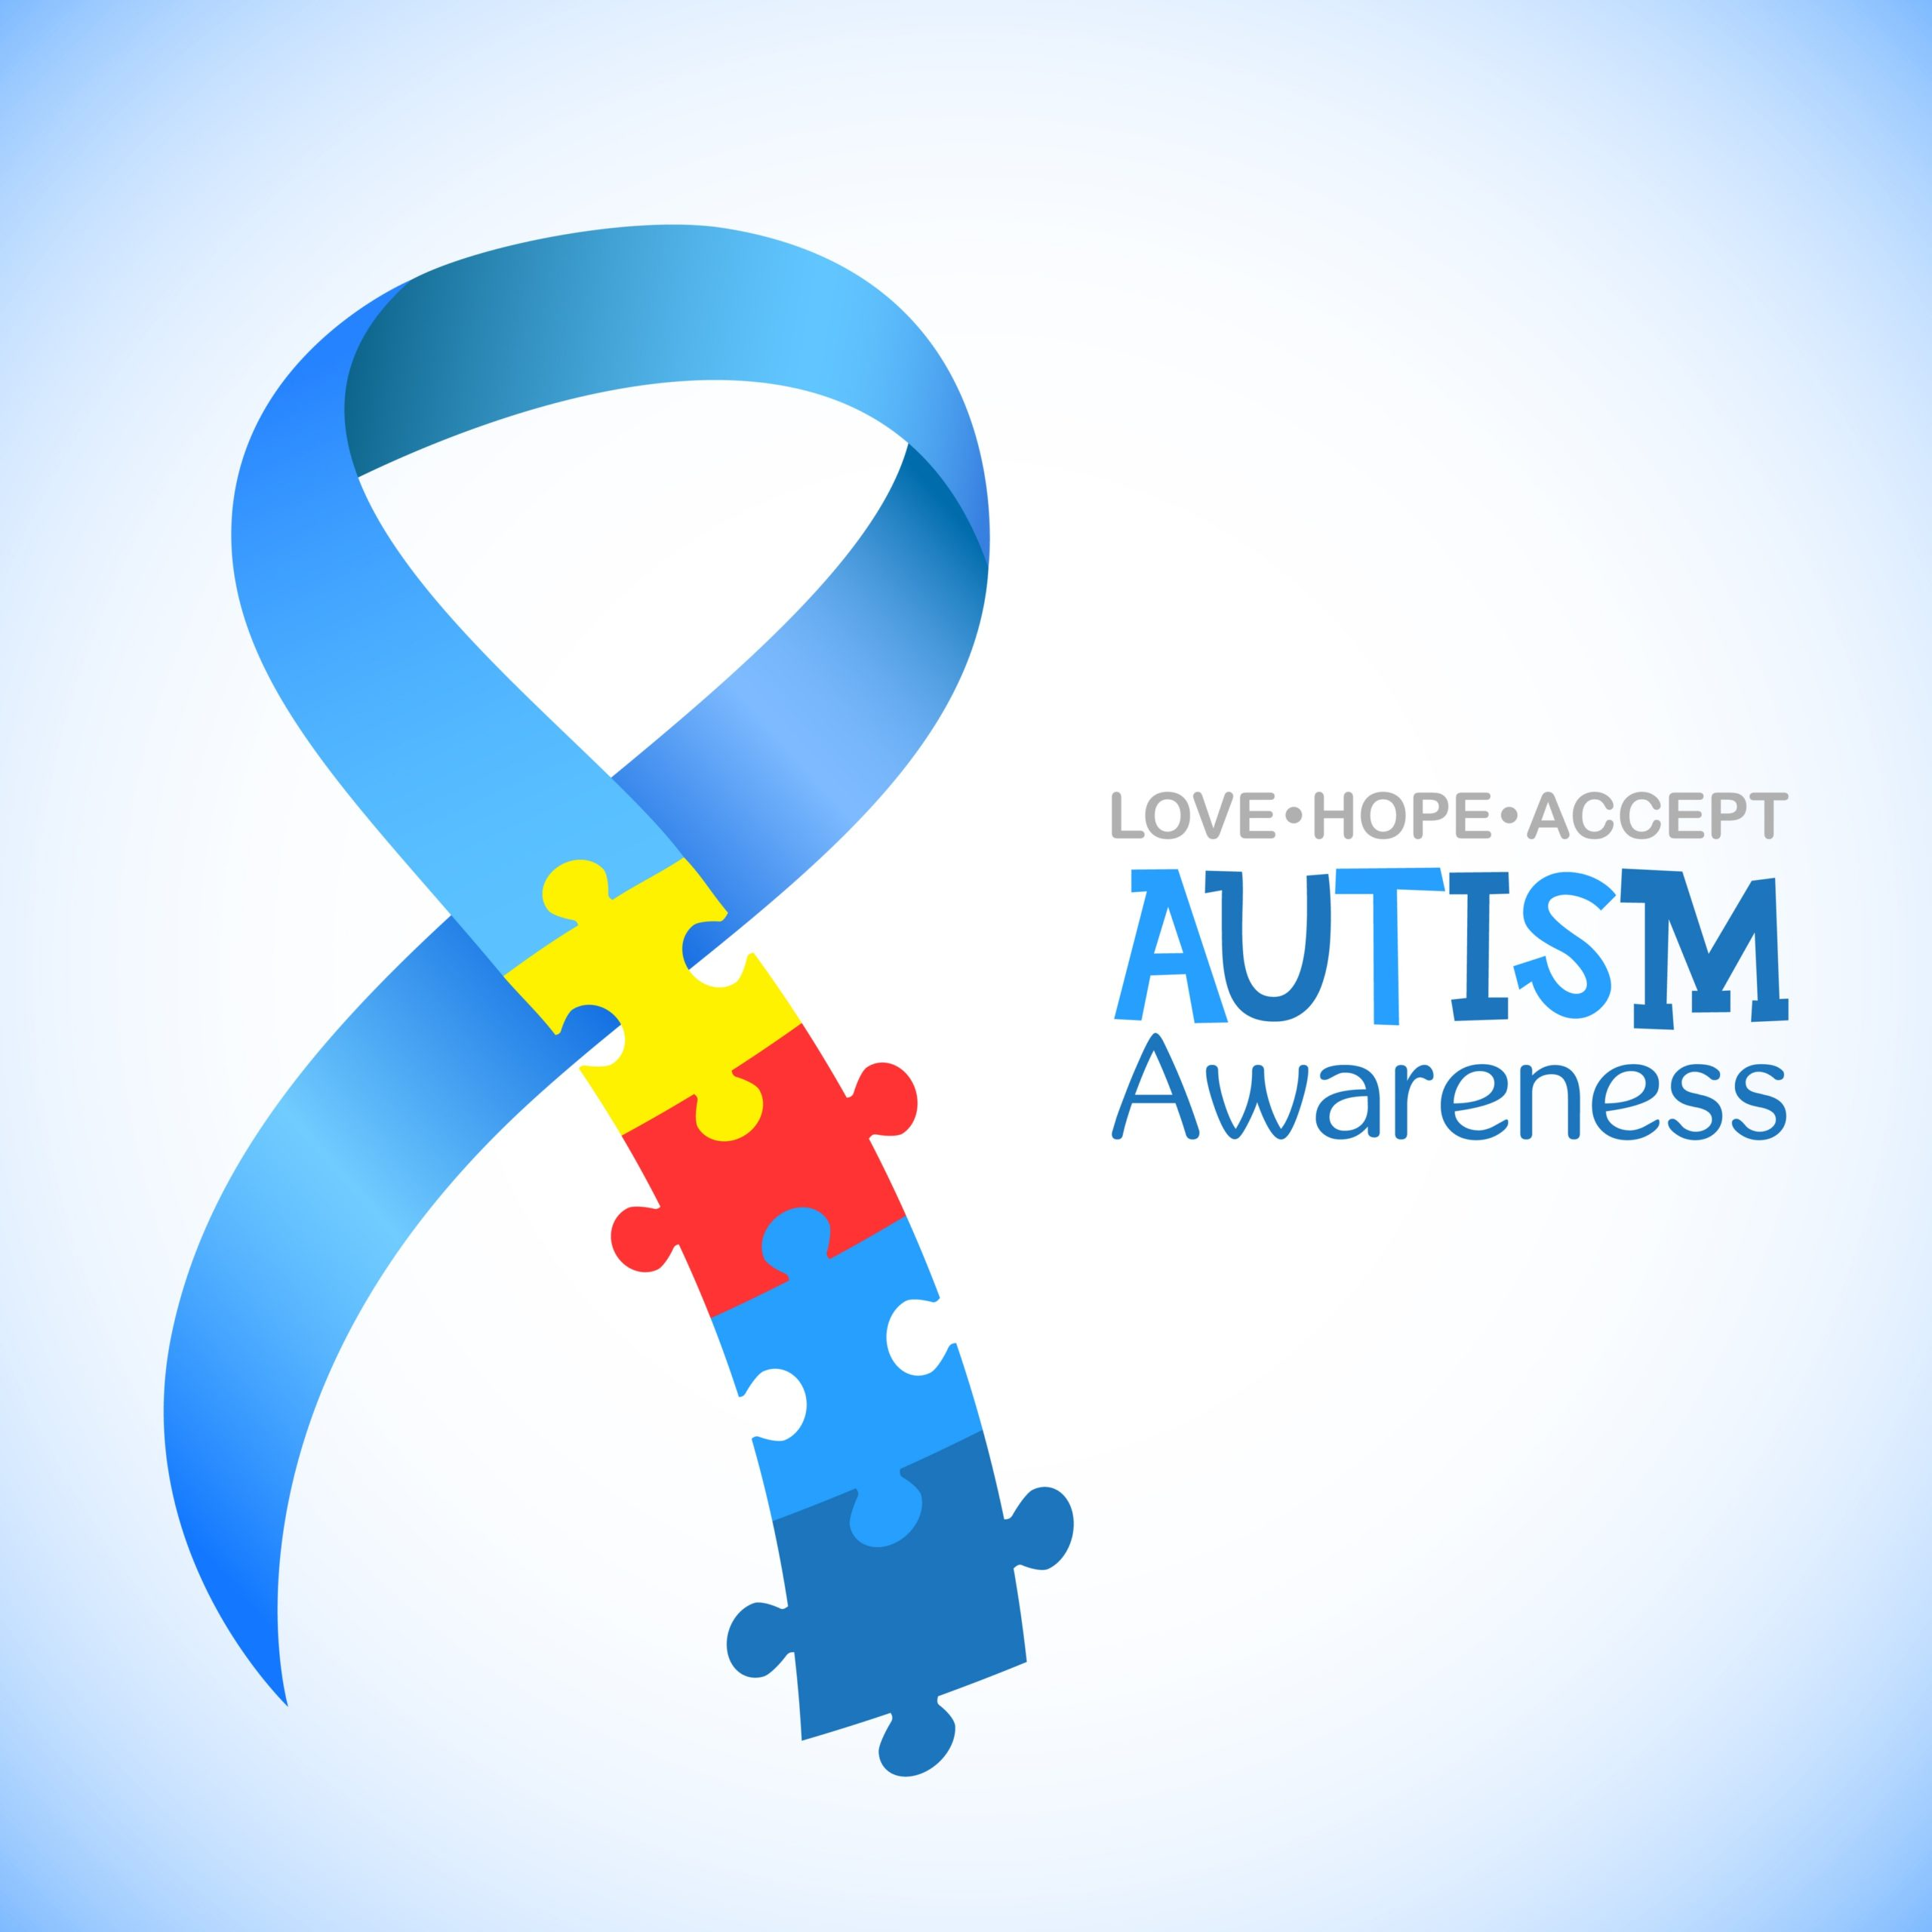 Autism Awareness Month Notice with Puzzle Symbol